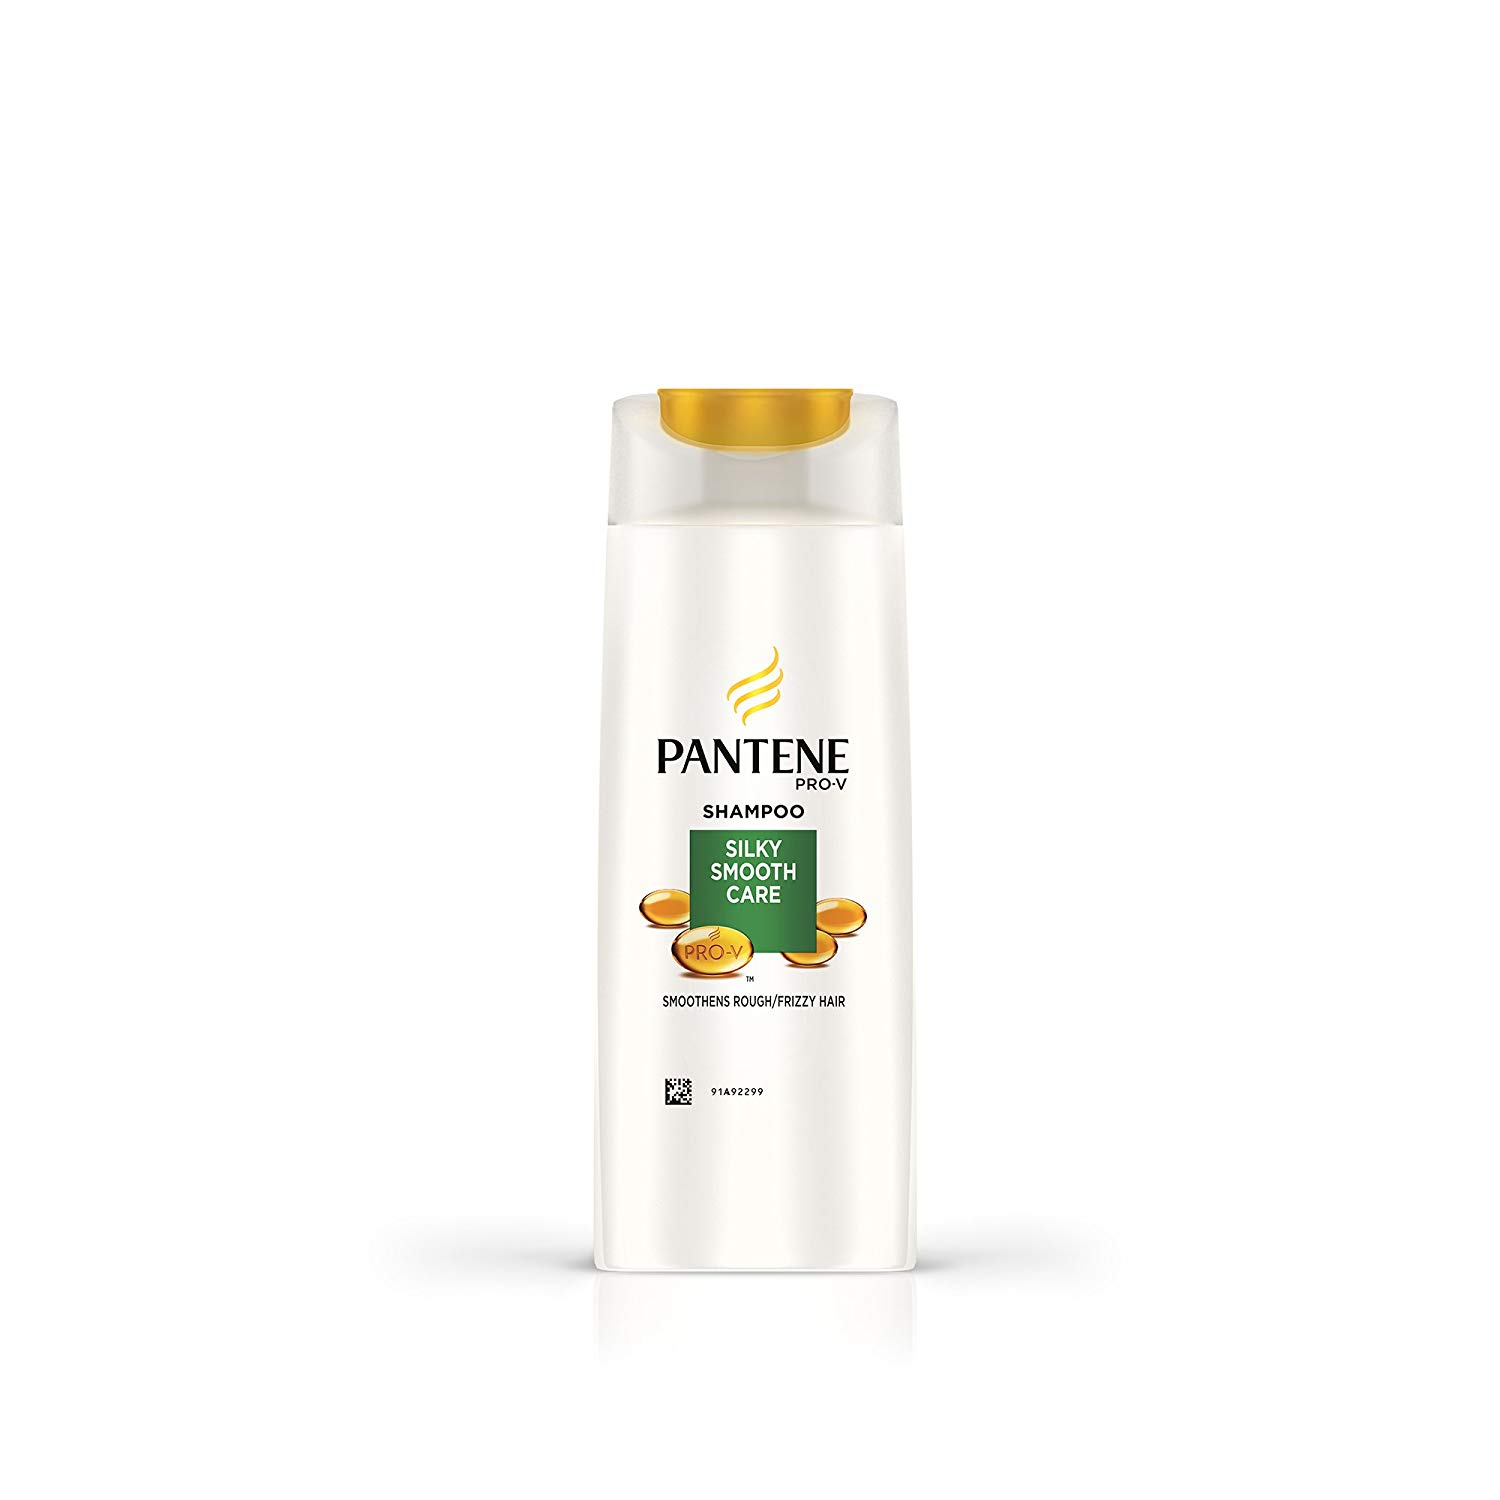 Pantene Smooth Silky Shampoo 80ml